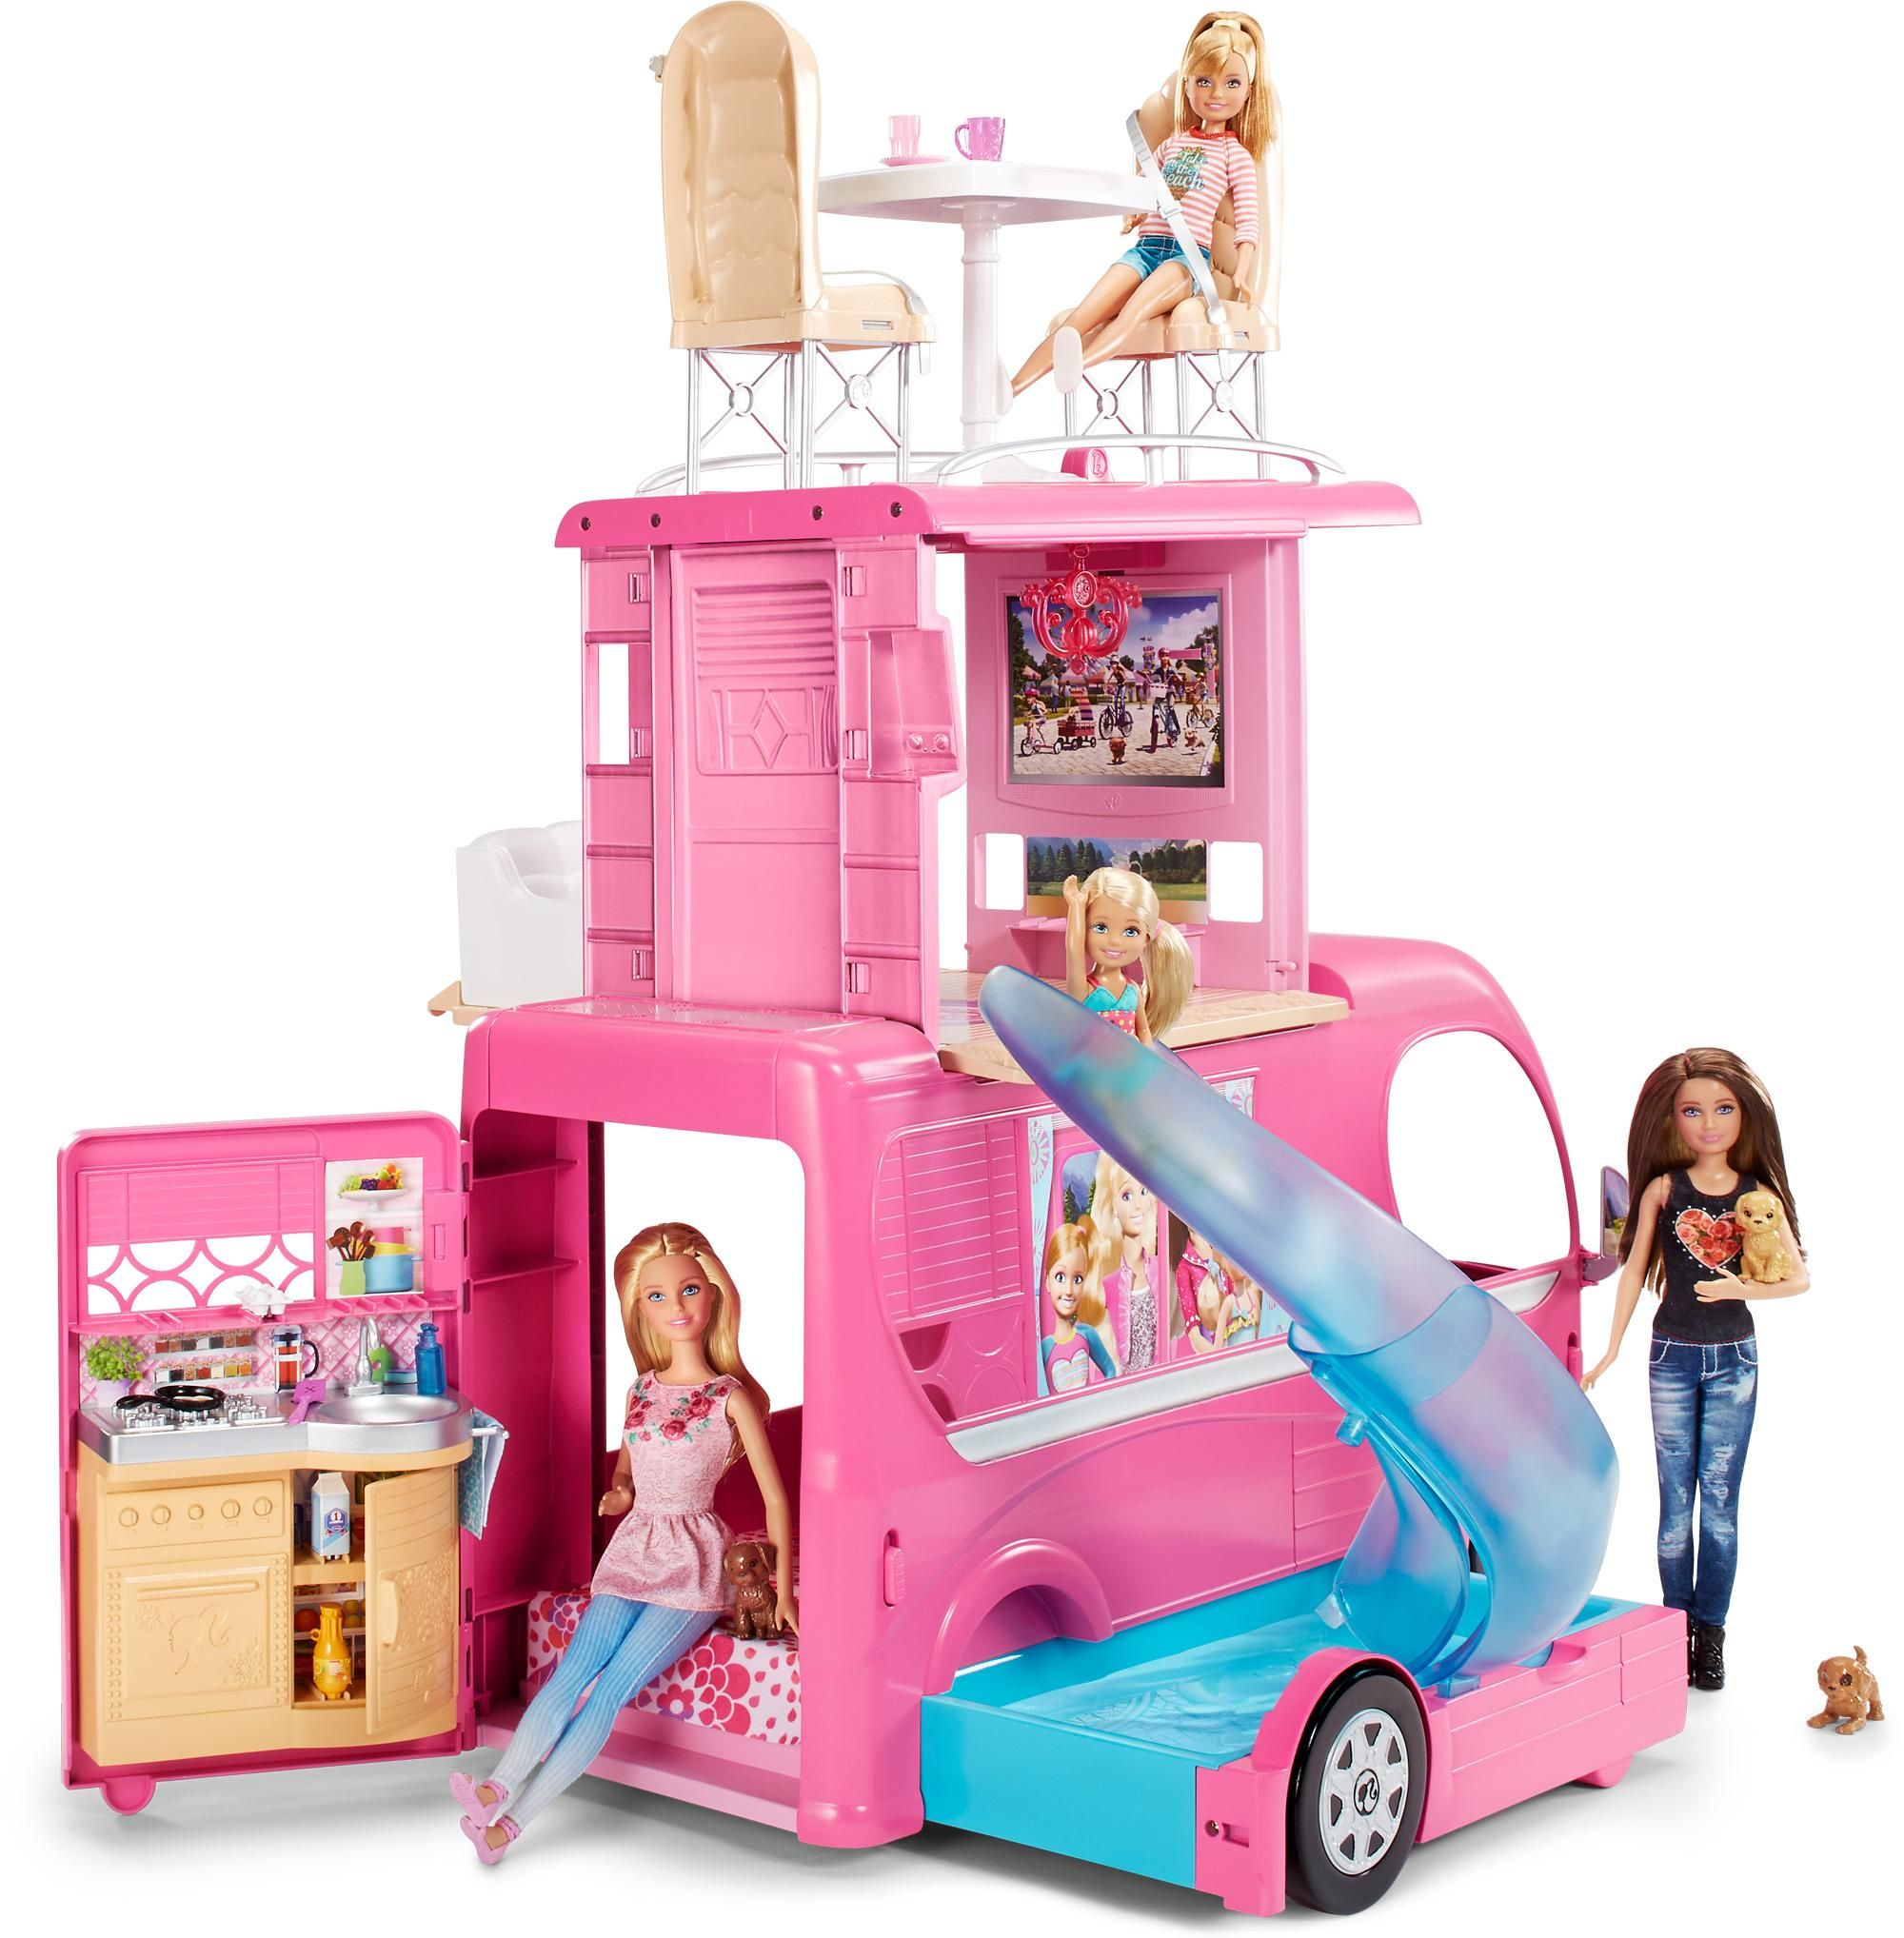 Barbie deluxe furniture stovetop to tabletop kitchen doll target - Dolls